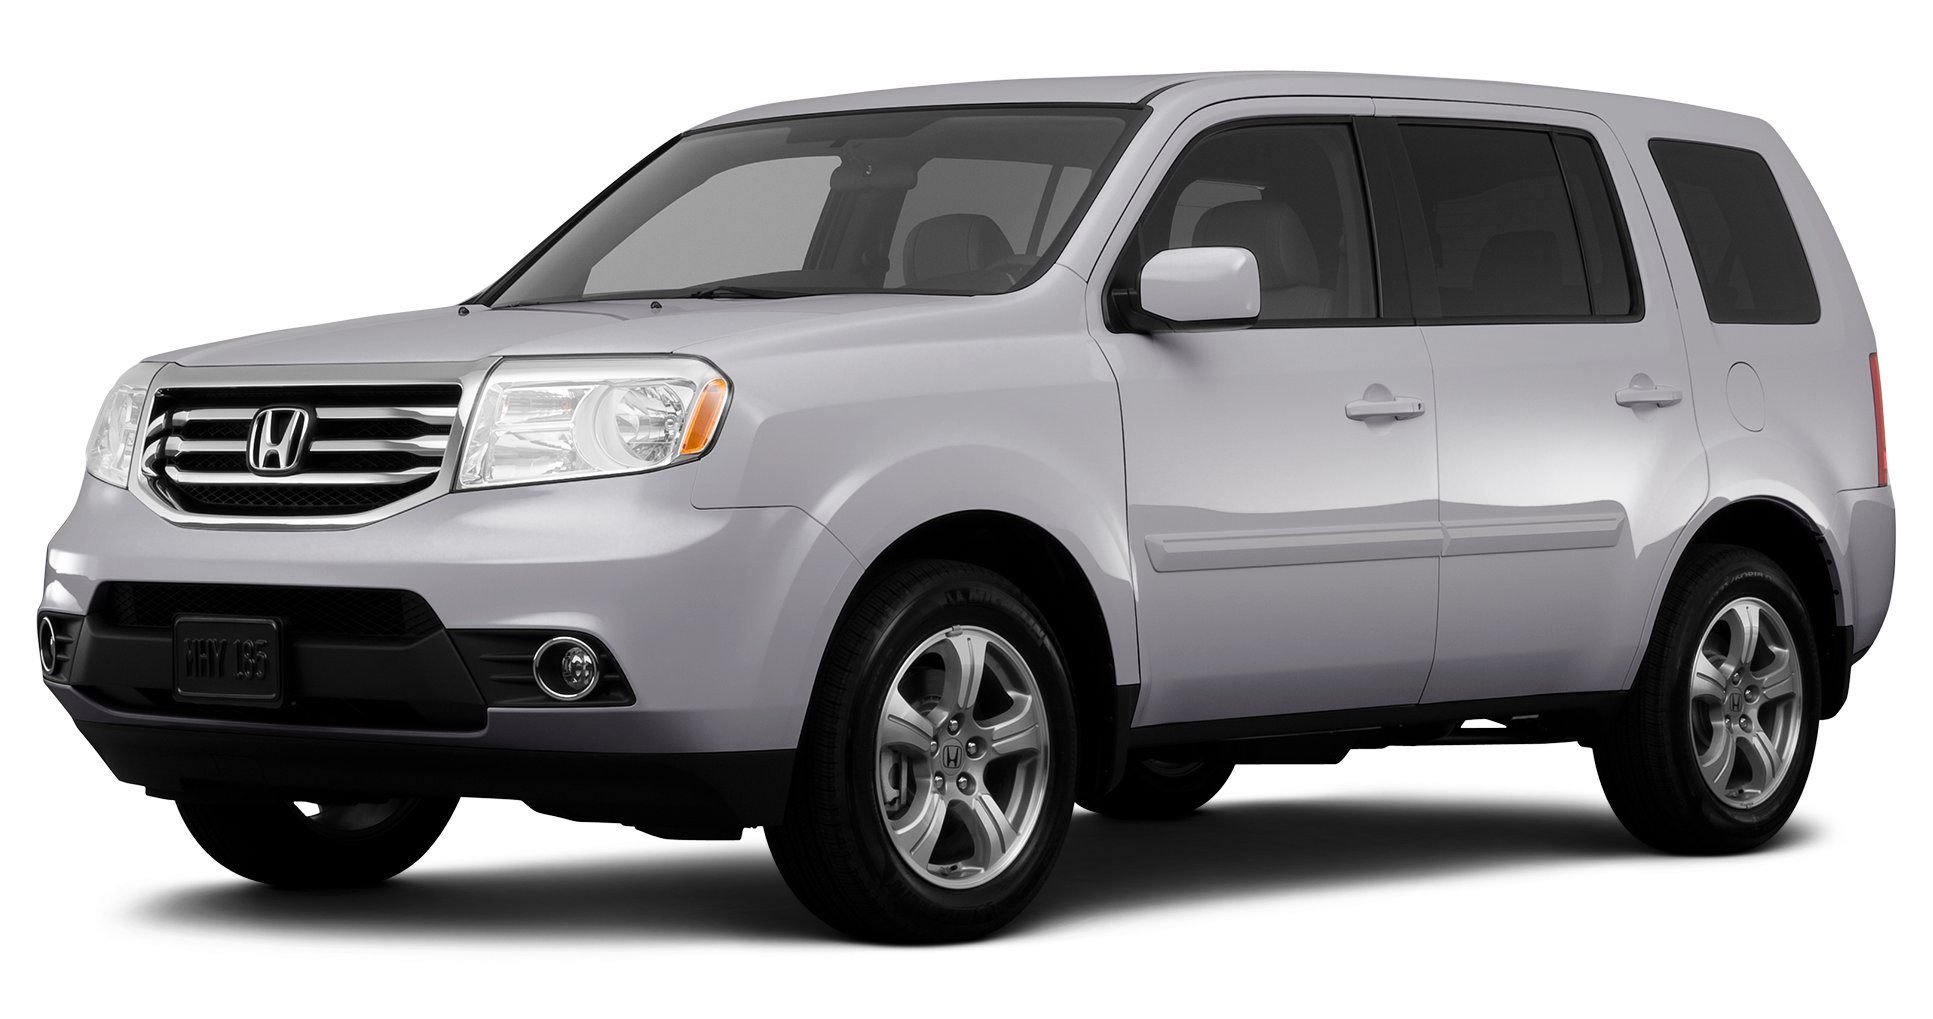 2013 honda pilot reviews images and specs vehicles. Black Bedroom Furniture Sets. Home Design Ideas